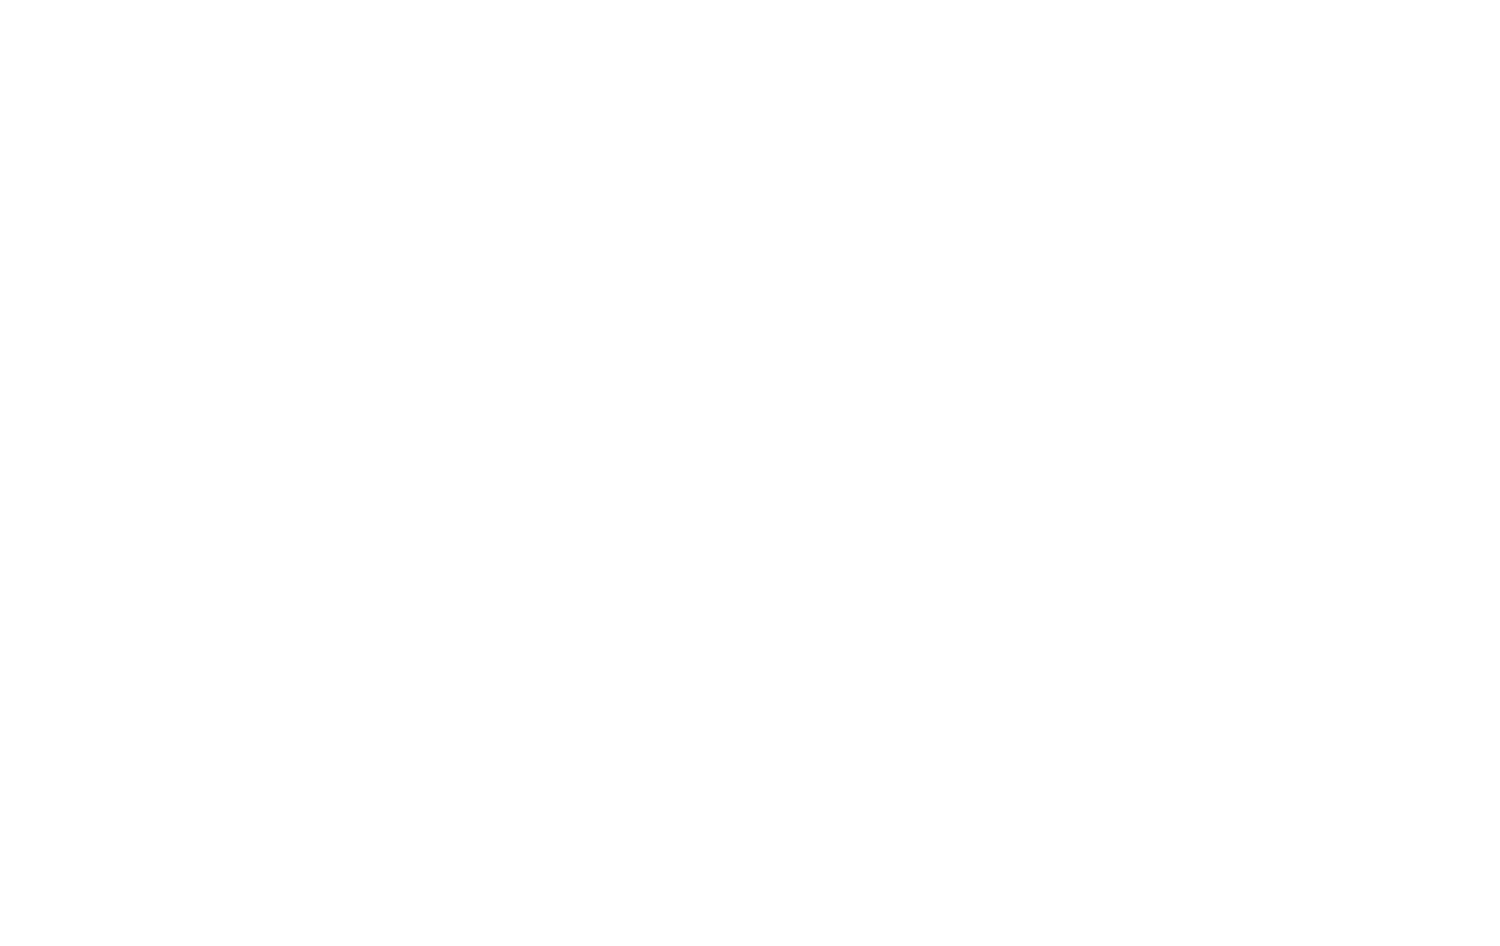 Allow The Children